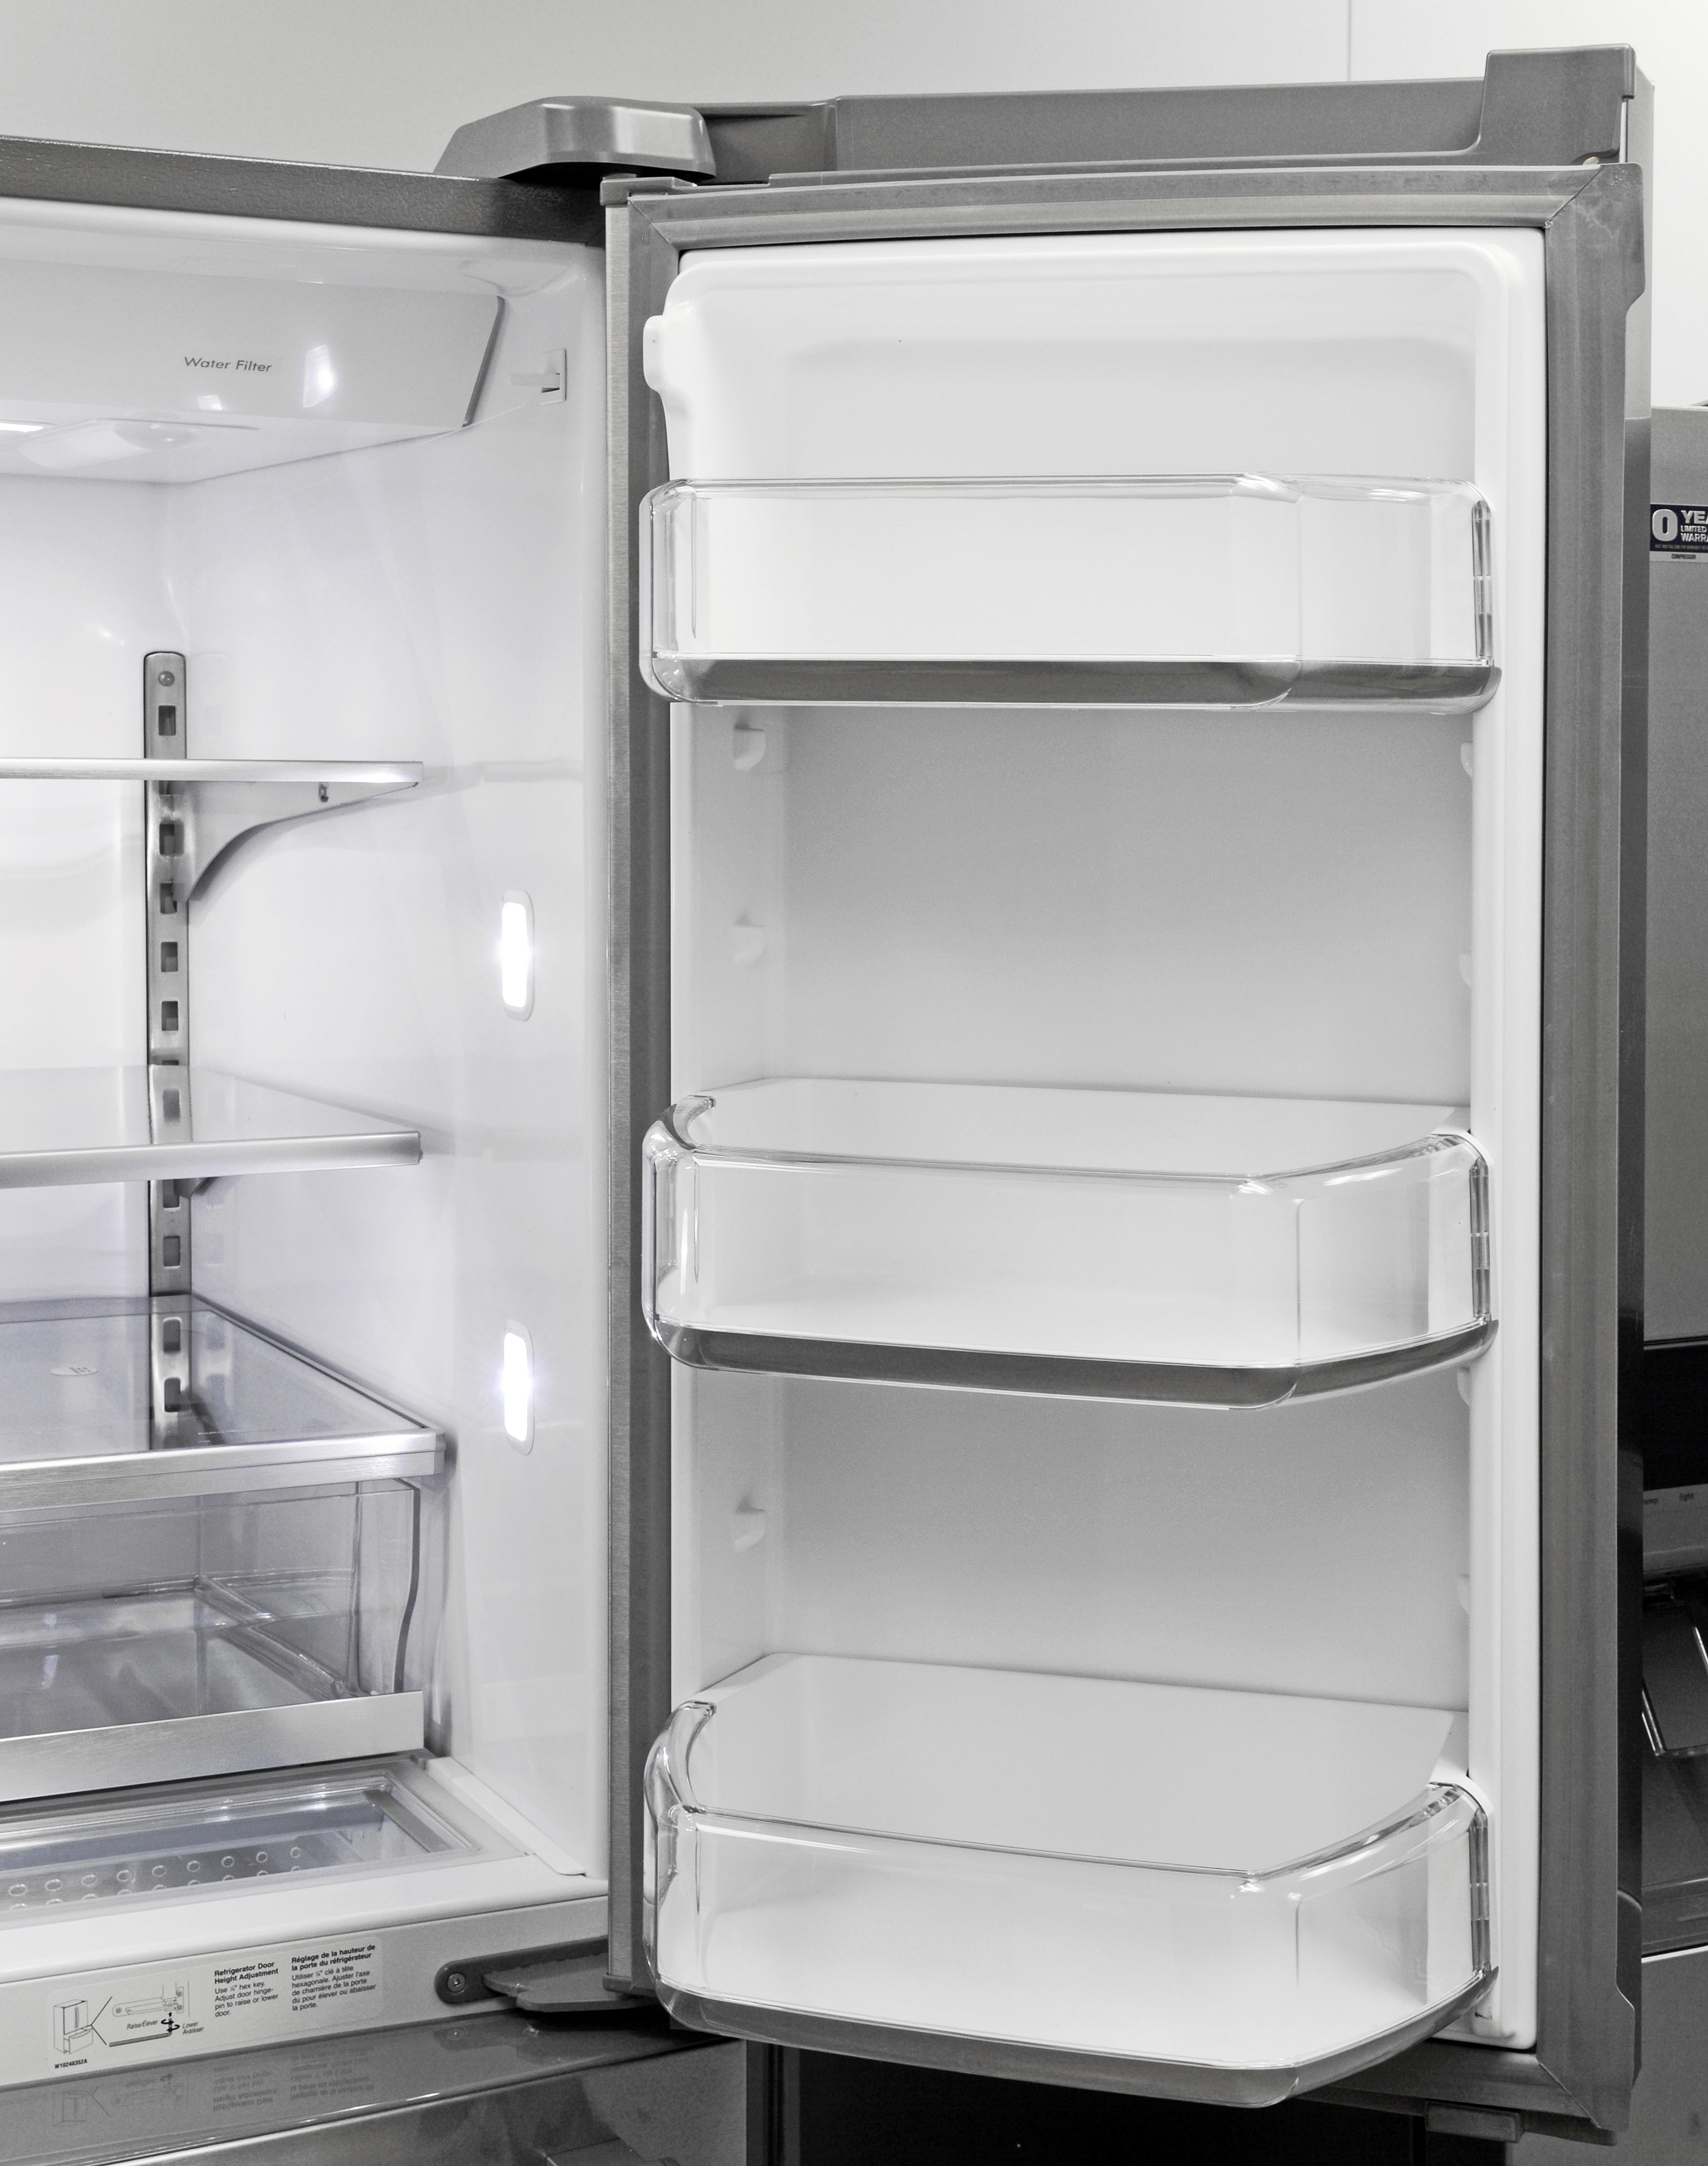 Maytag MFX2876DRM Refrigerator Review - Reviewed Refrigerators